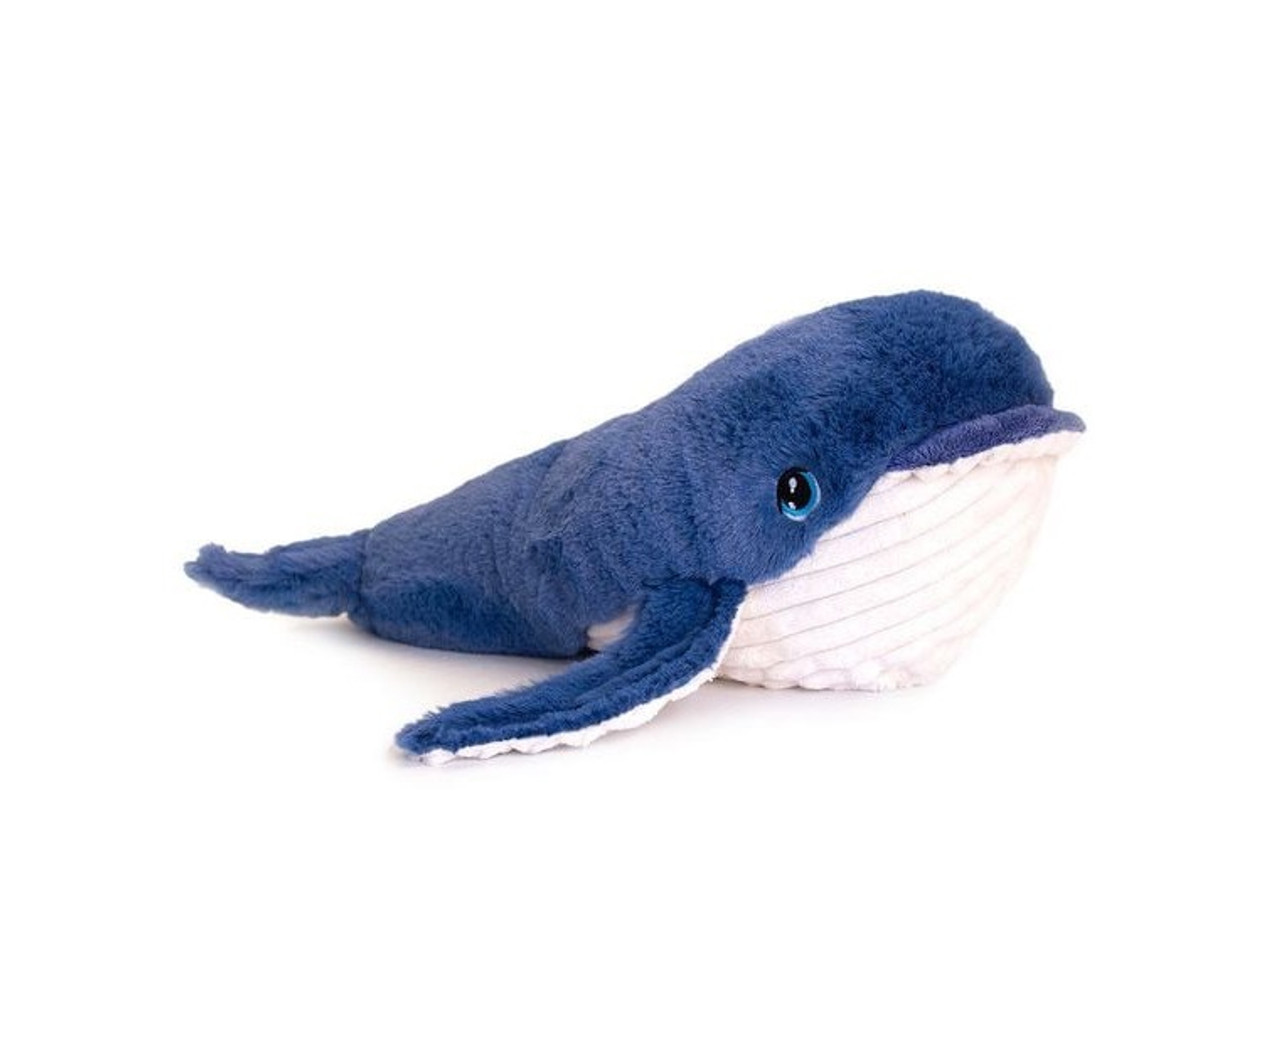 Korimco Keeleco Plush Toy Whale at Baby Barn Discounts Korimco keeleco plush toy range is made from recycles inner with super soft body.